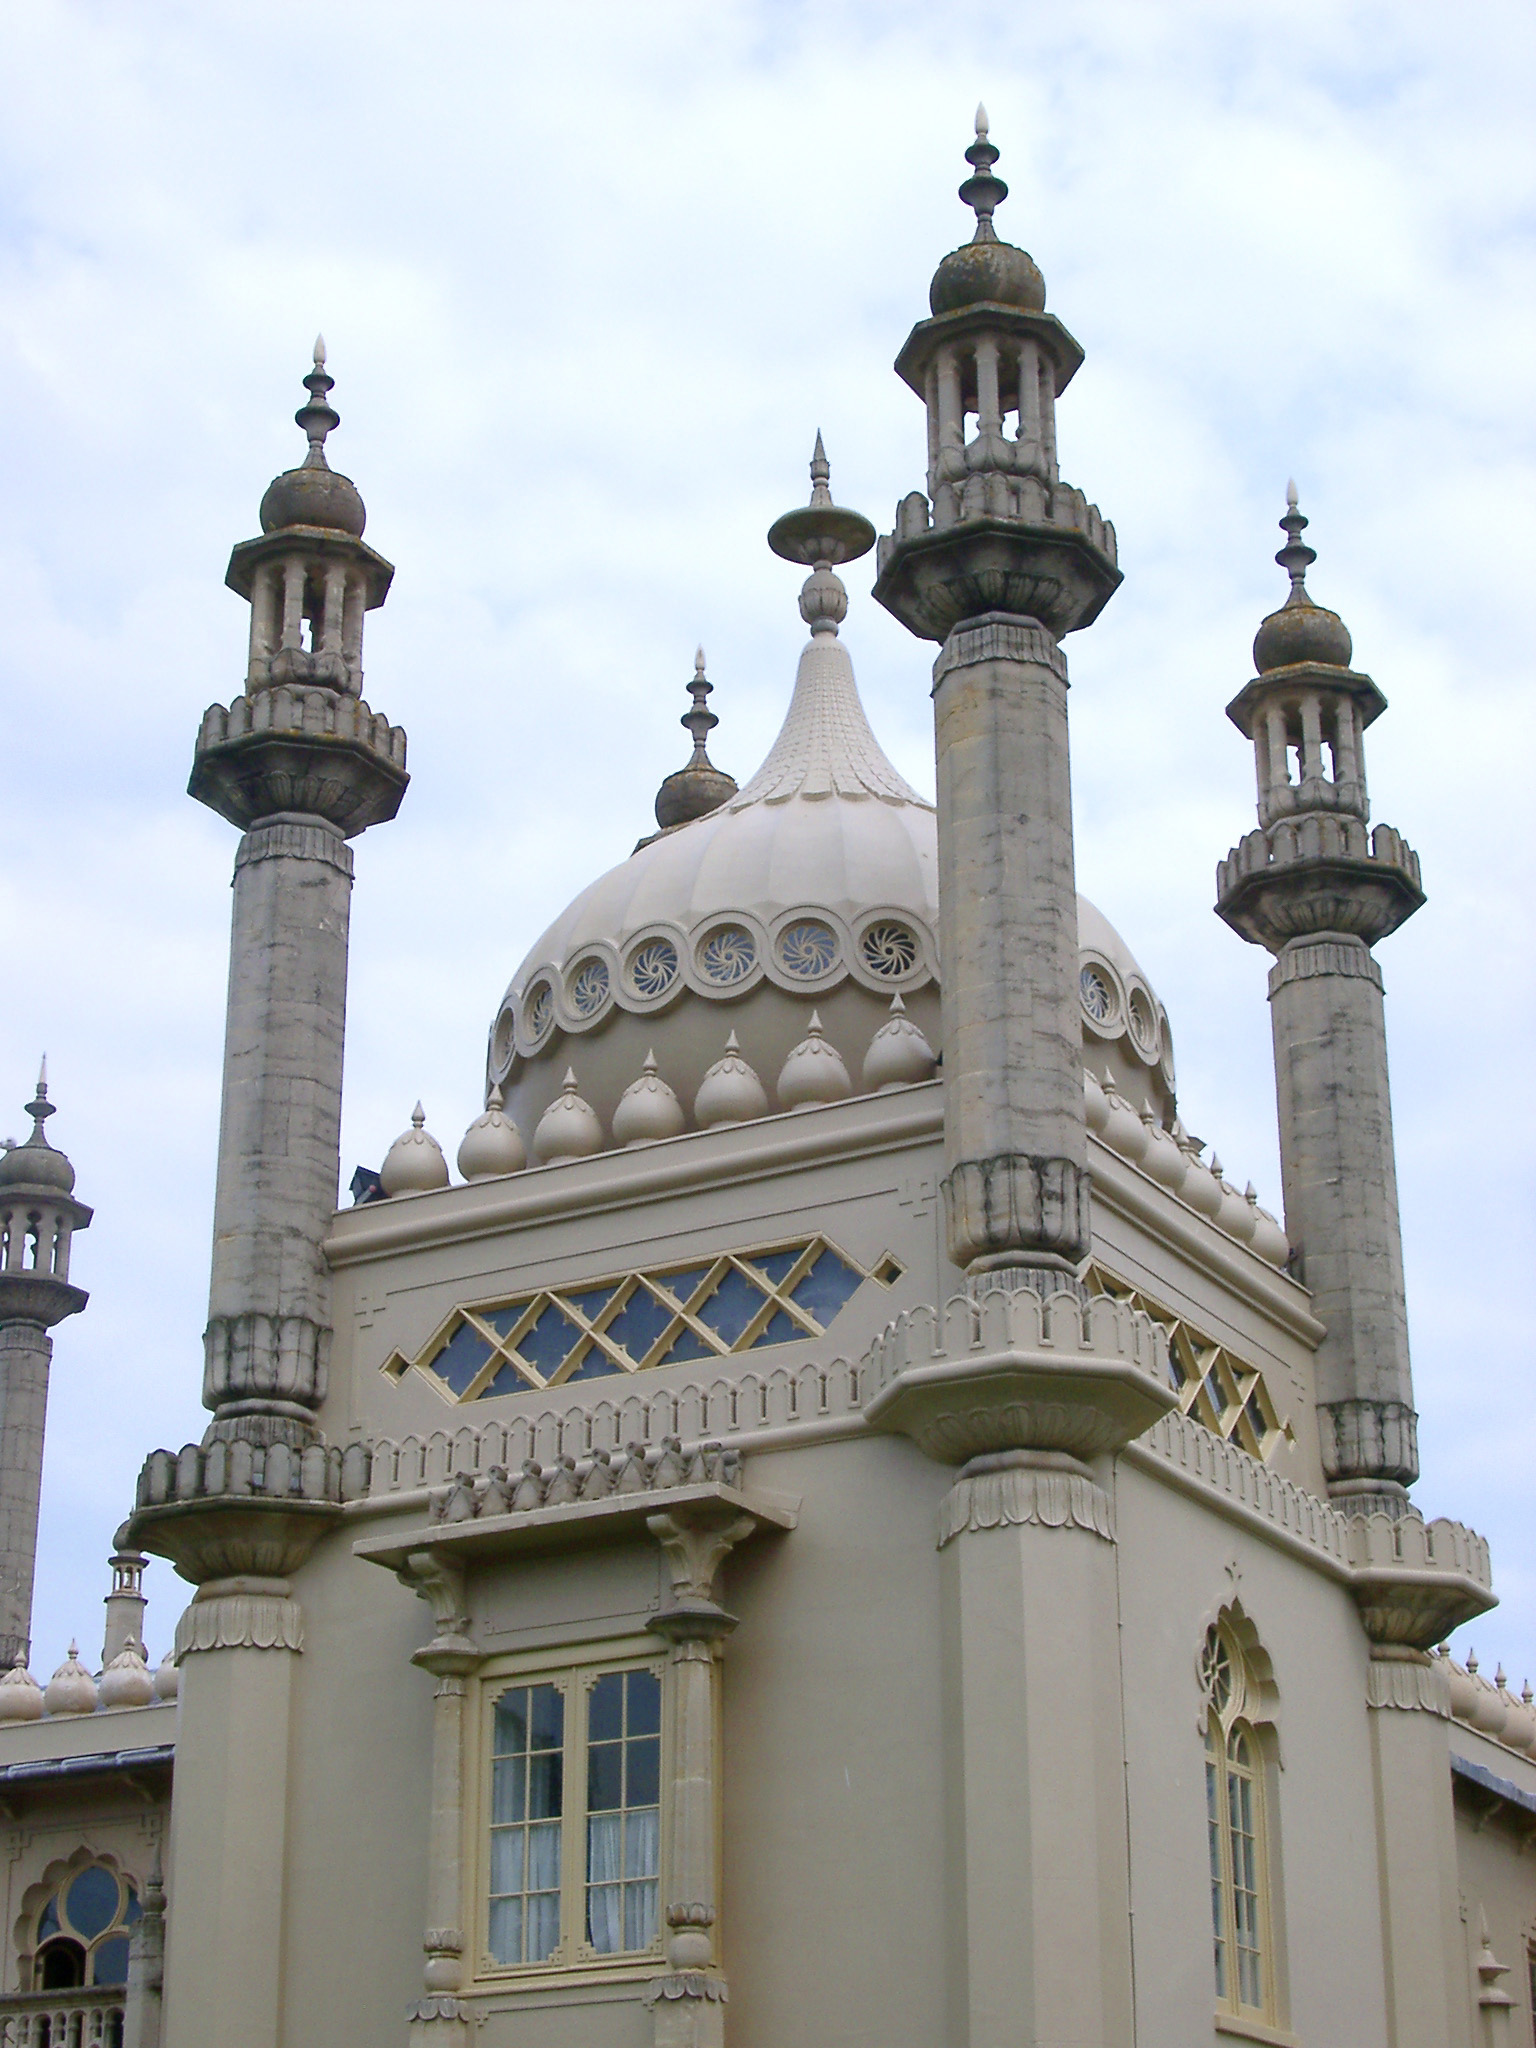 Close Up Architectural Detail of Dome and Minarets of Royal Pavilion, Brighton, England